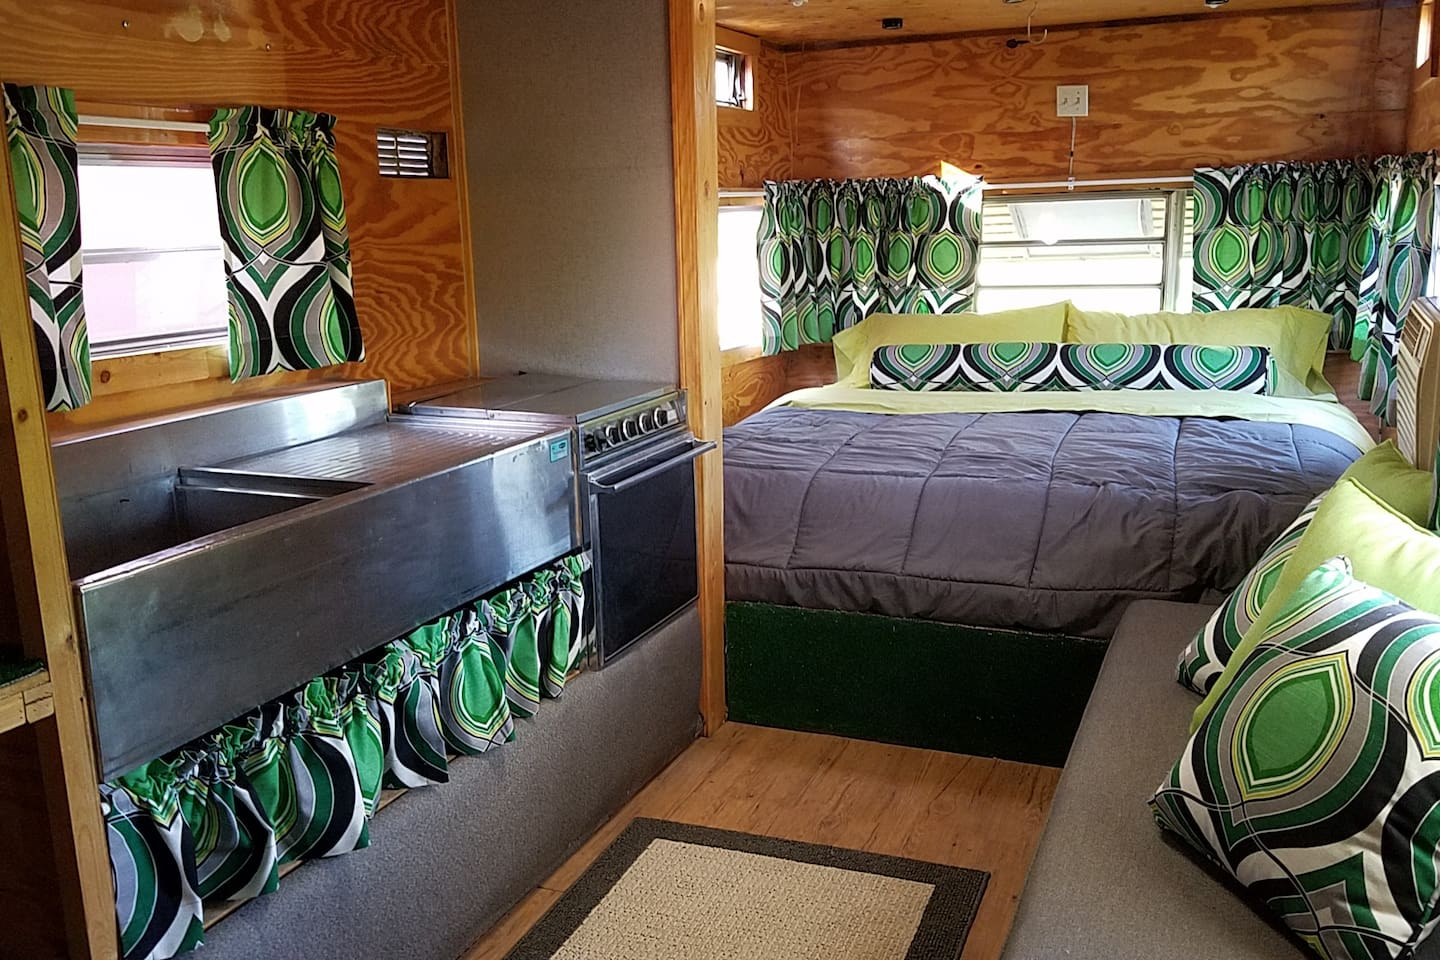 King Size bed, window A/C unit and space heater, run off a long extension cord, so you are almost off-grid, but not quite